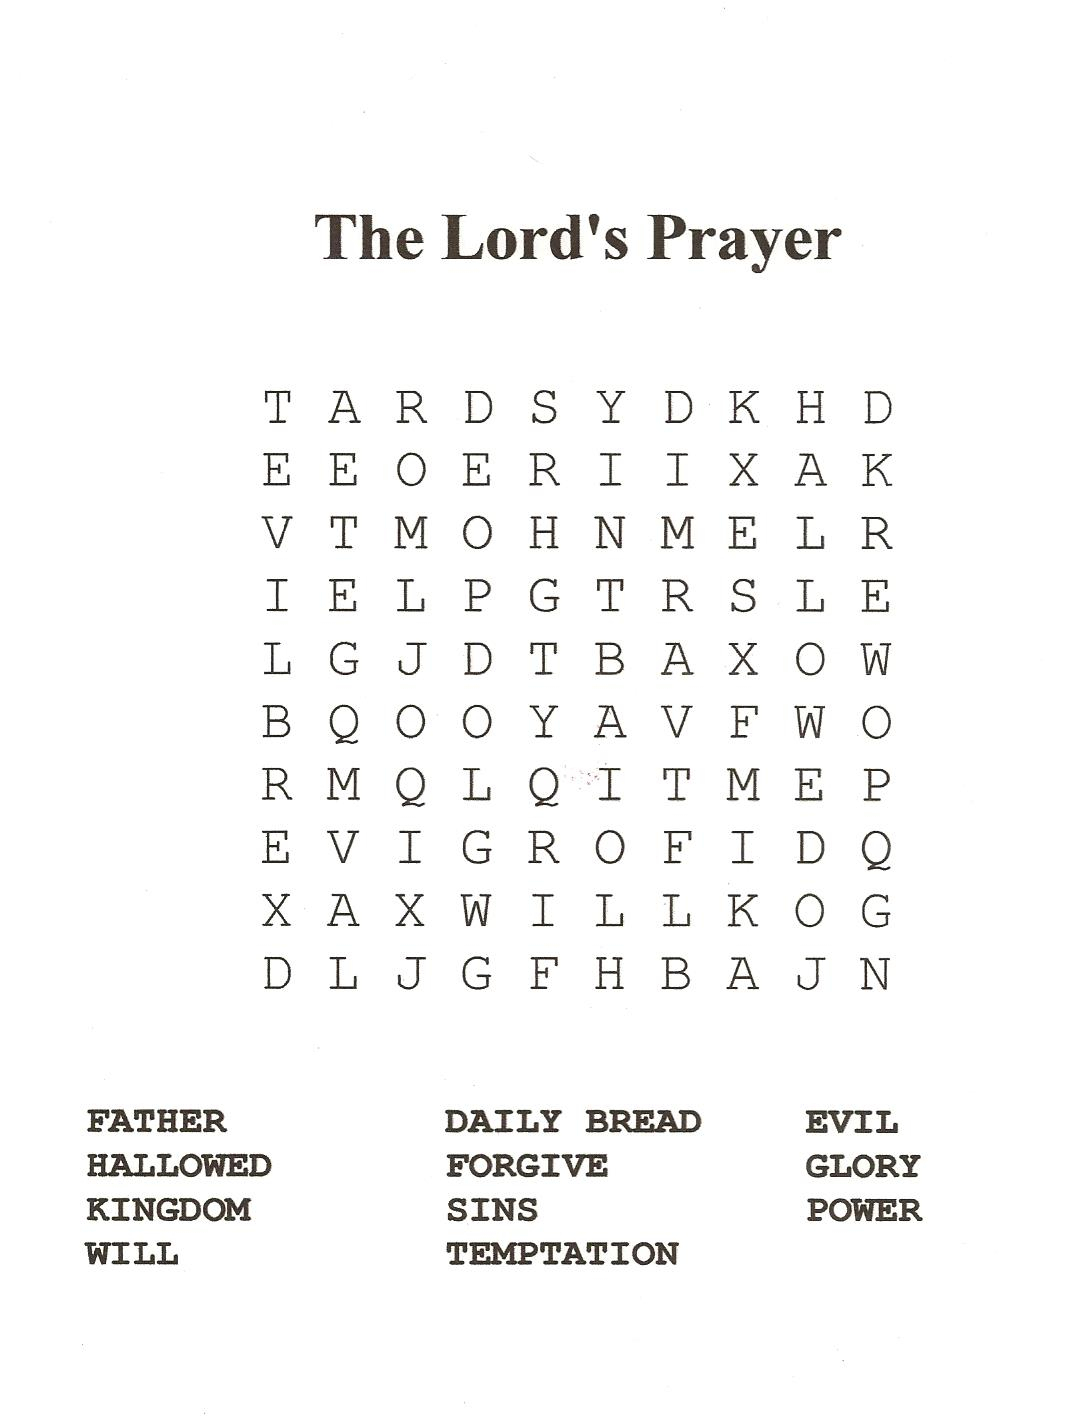 18 Fun Printable Bible Word Search Puzzles | Kittybabylove - Printable Bible Puzzles